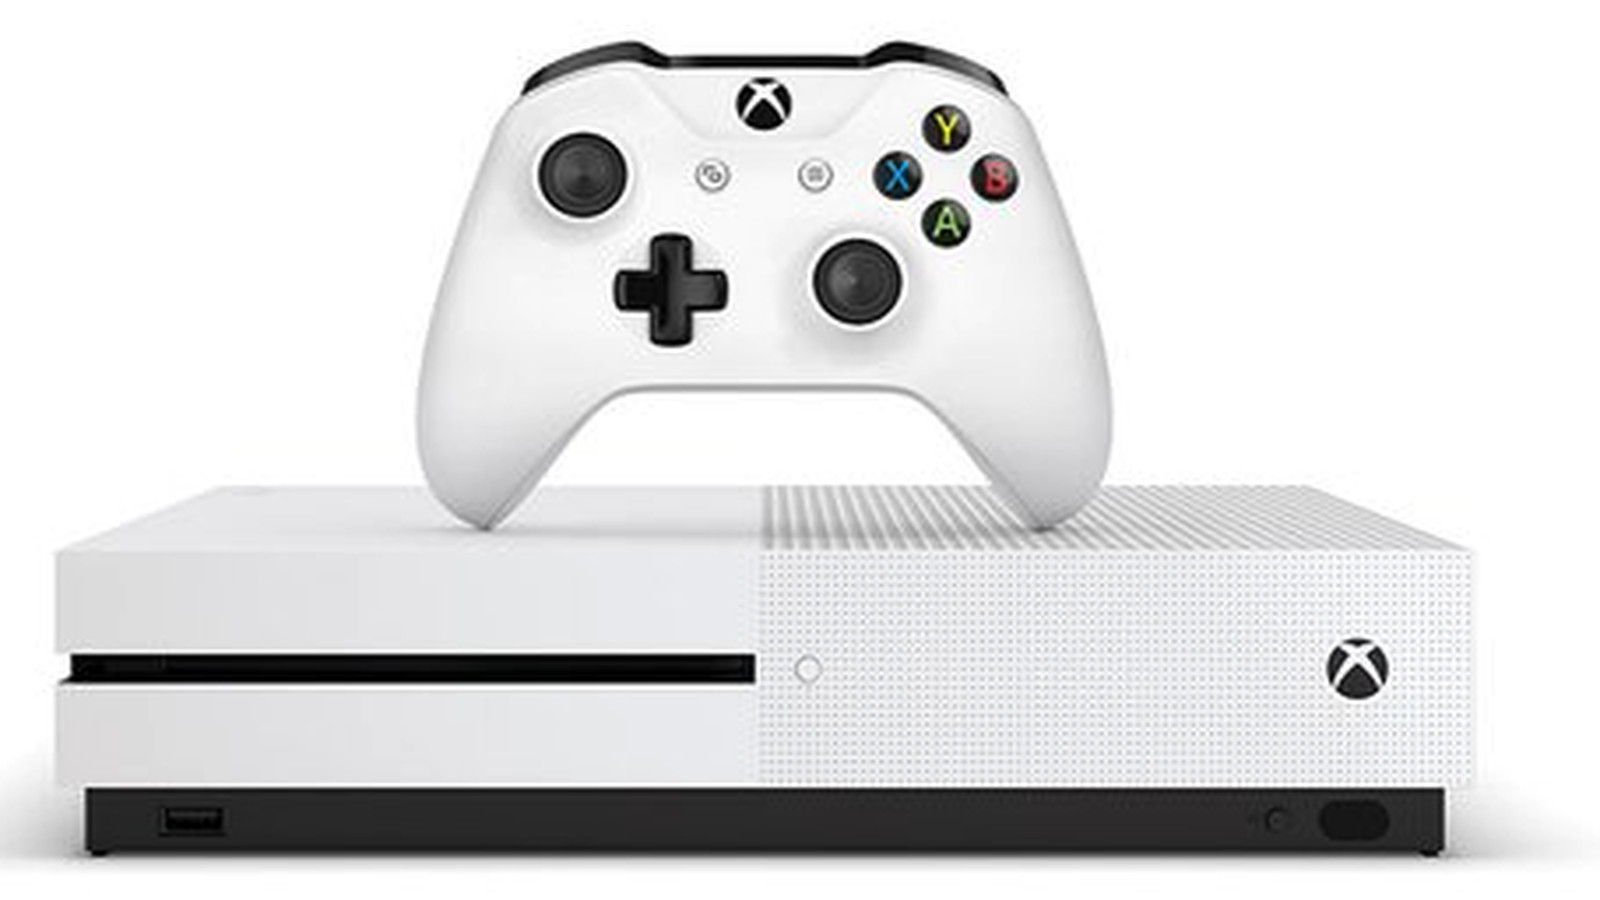 Microsoft S New Xbox One S Revealed In Leaked Images The